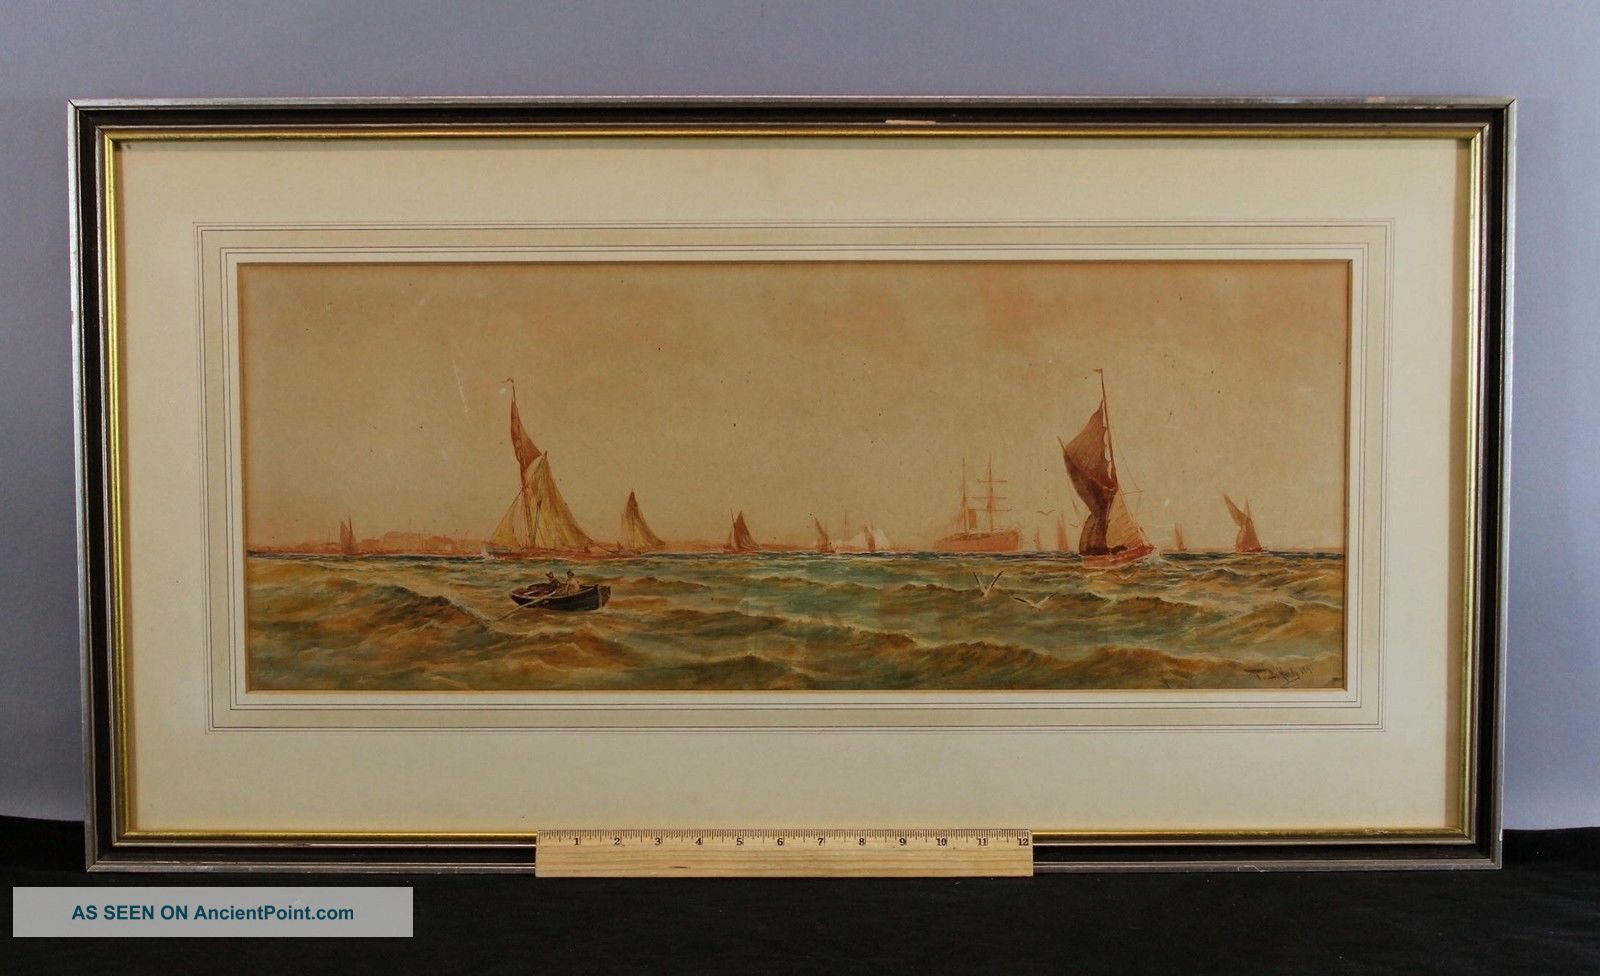 Antique 19thc Thomas B Hardy Sailboat Maritime Seascape Watercolor Painting Other Maritime Antiques photo